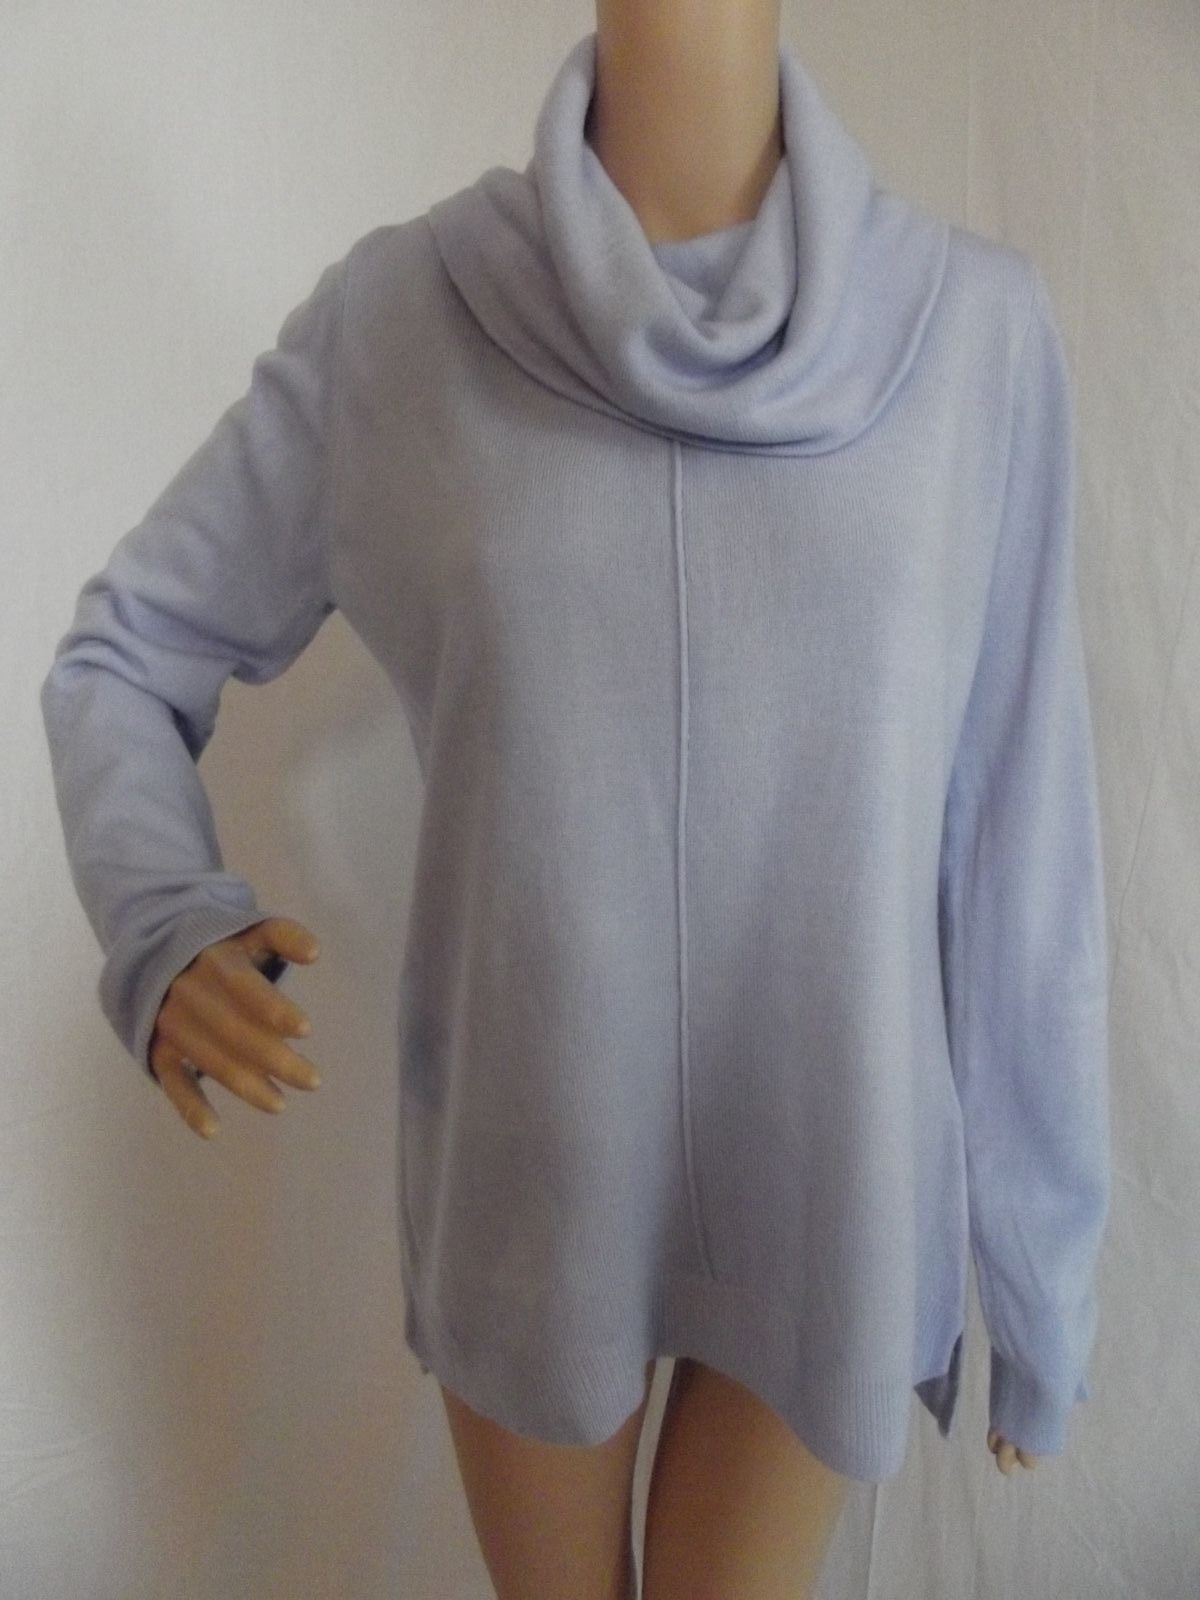 8bd4b1dd433 9.99 | ROZ & ALI Large LIGHT PASTEL PURPLE COWL NECK SWEATER long tunic L ❤  #large #light #pastel #purple #sweater #tunic #Fotography #indie #handmade  ...